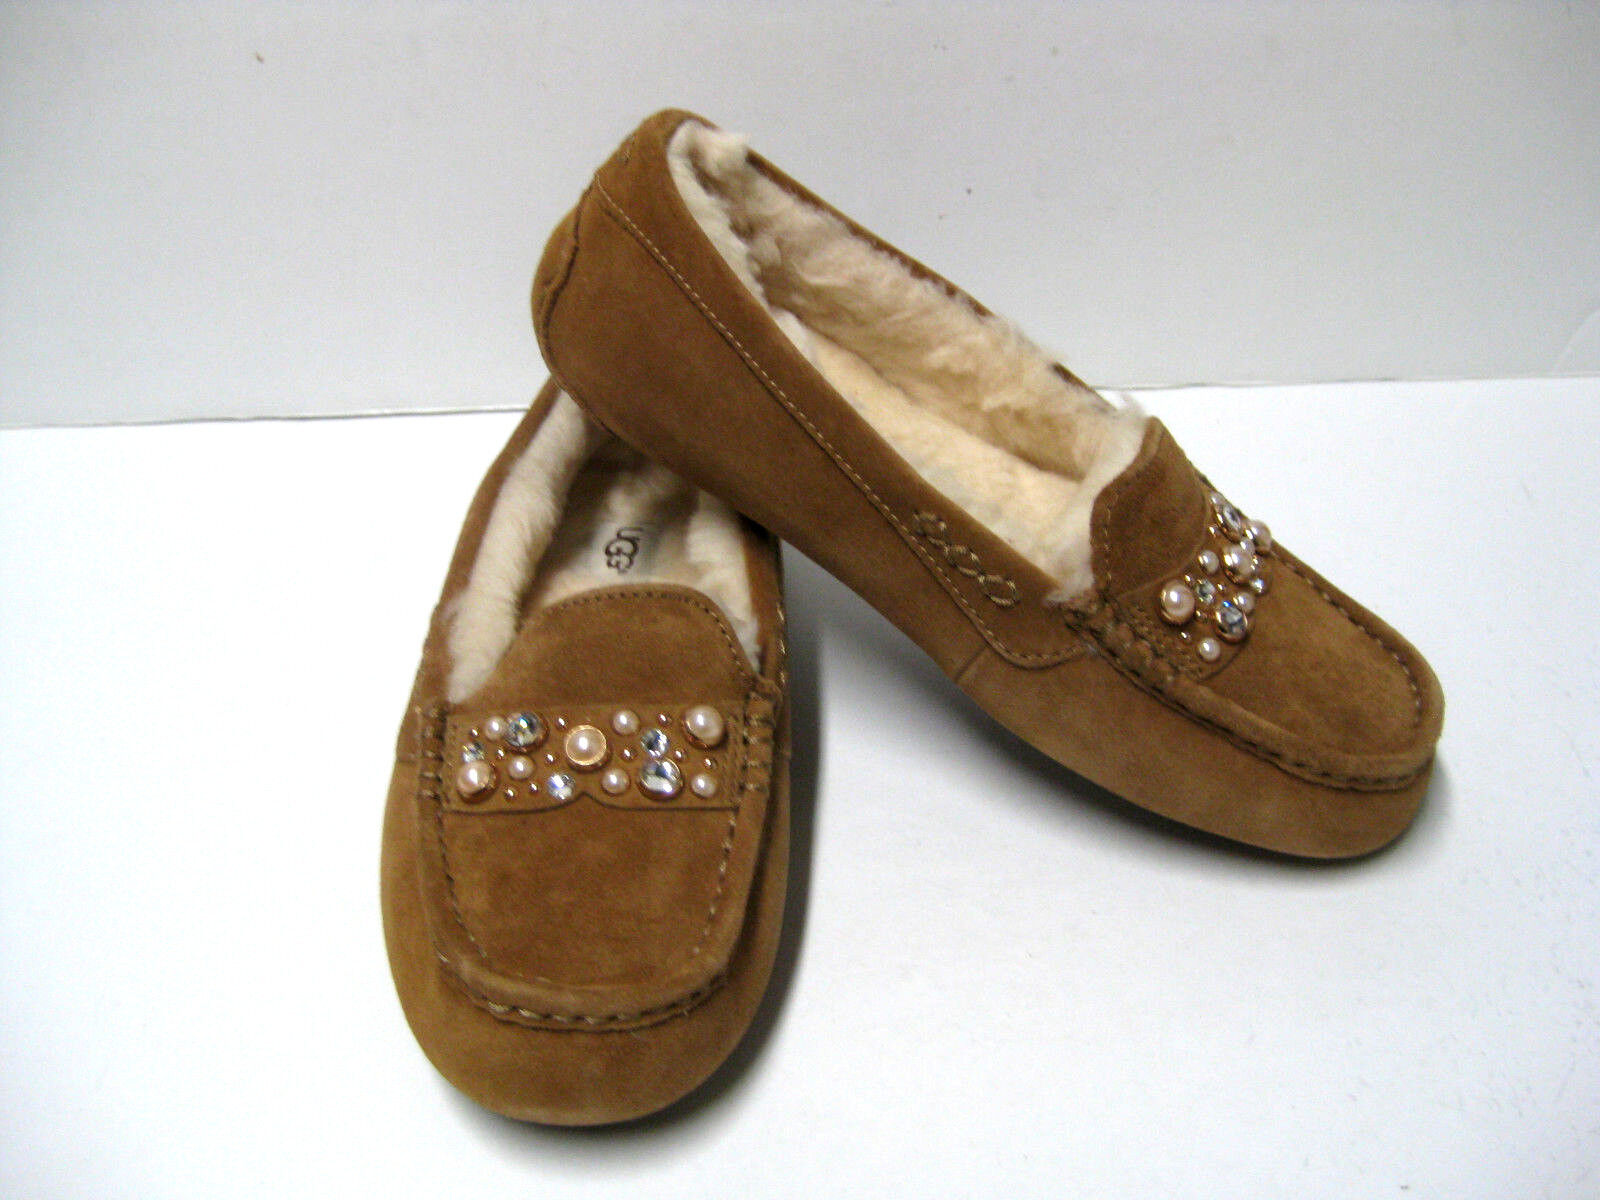 UGG ANSLEY BOW BRILLIANT NŐK SLIPPER SUEDE CHESTNUT US 9 / UK 7.5 / EU 40